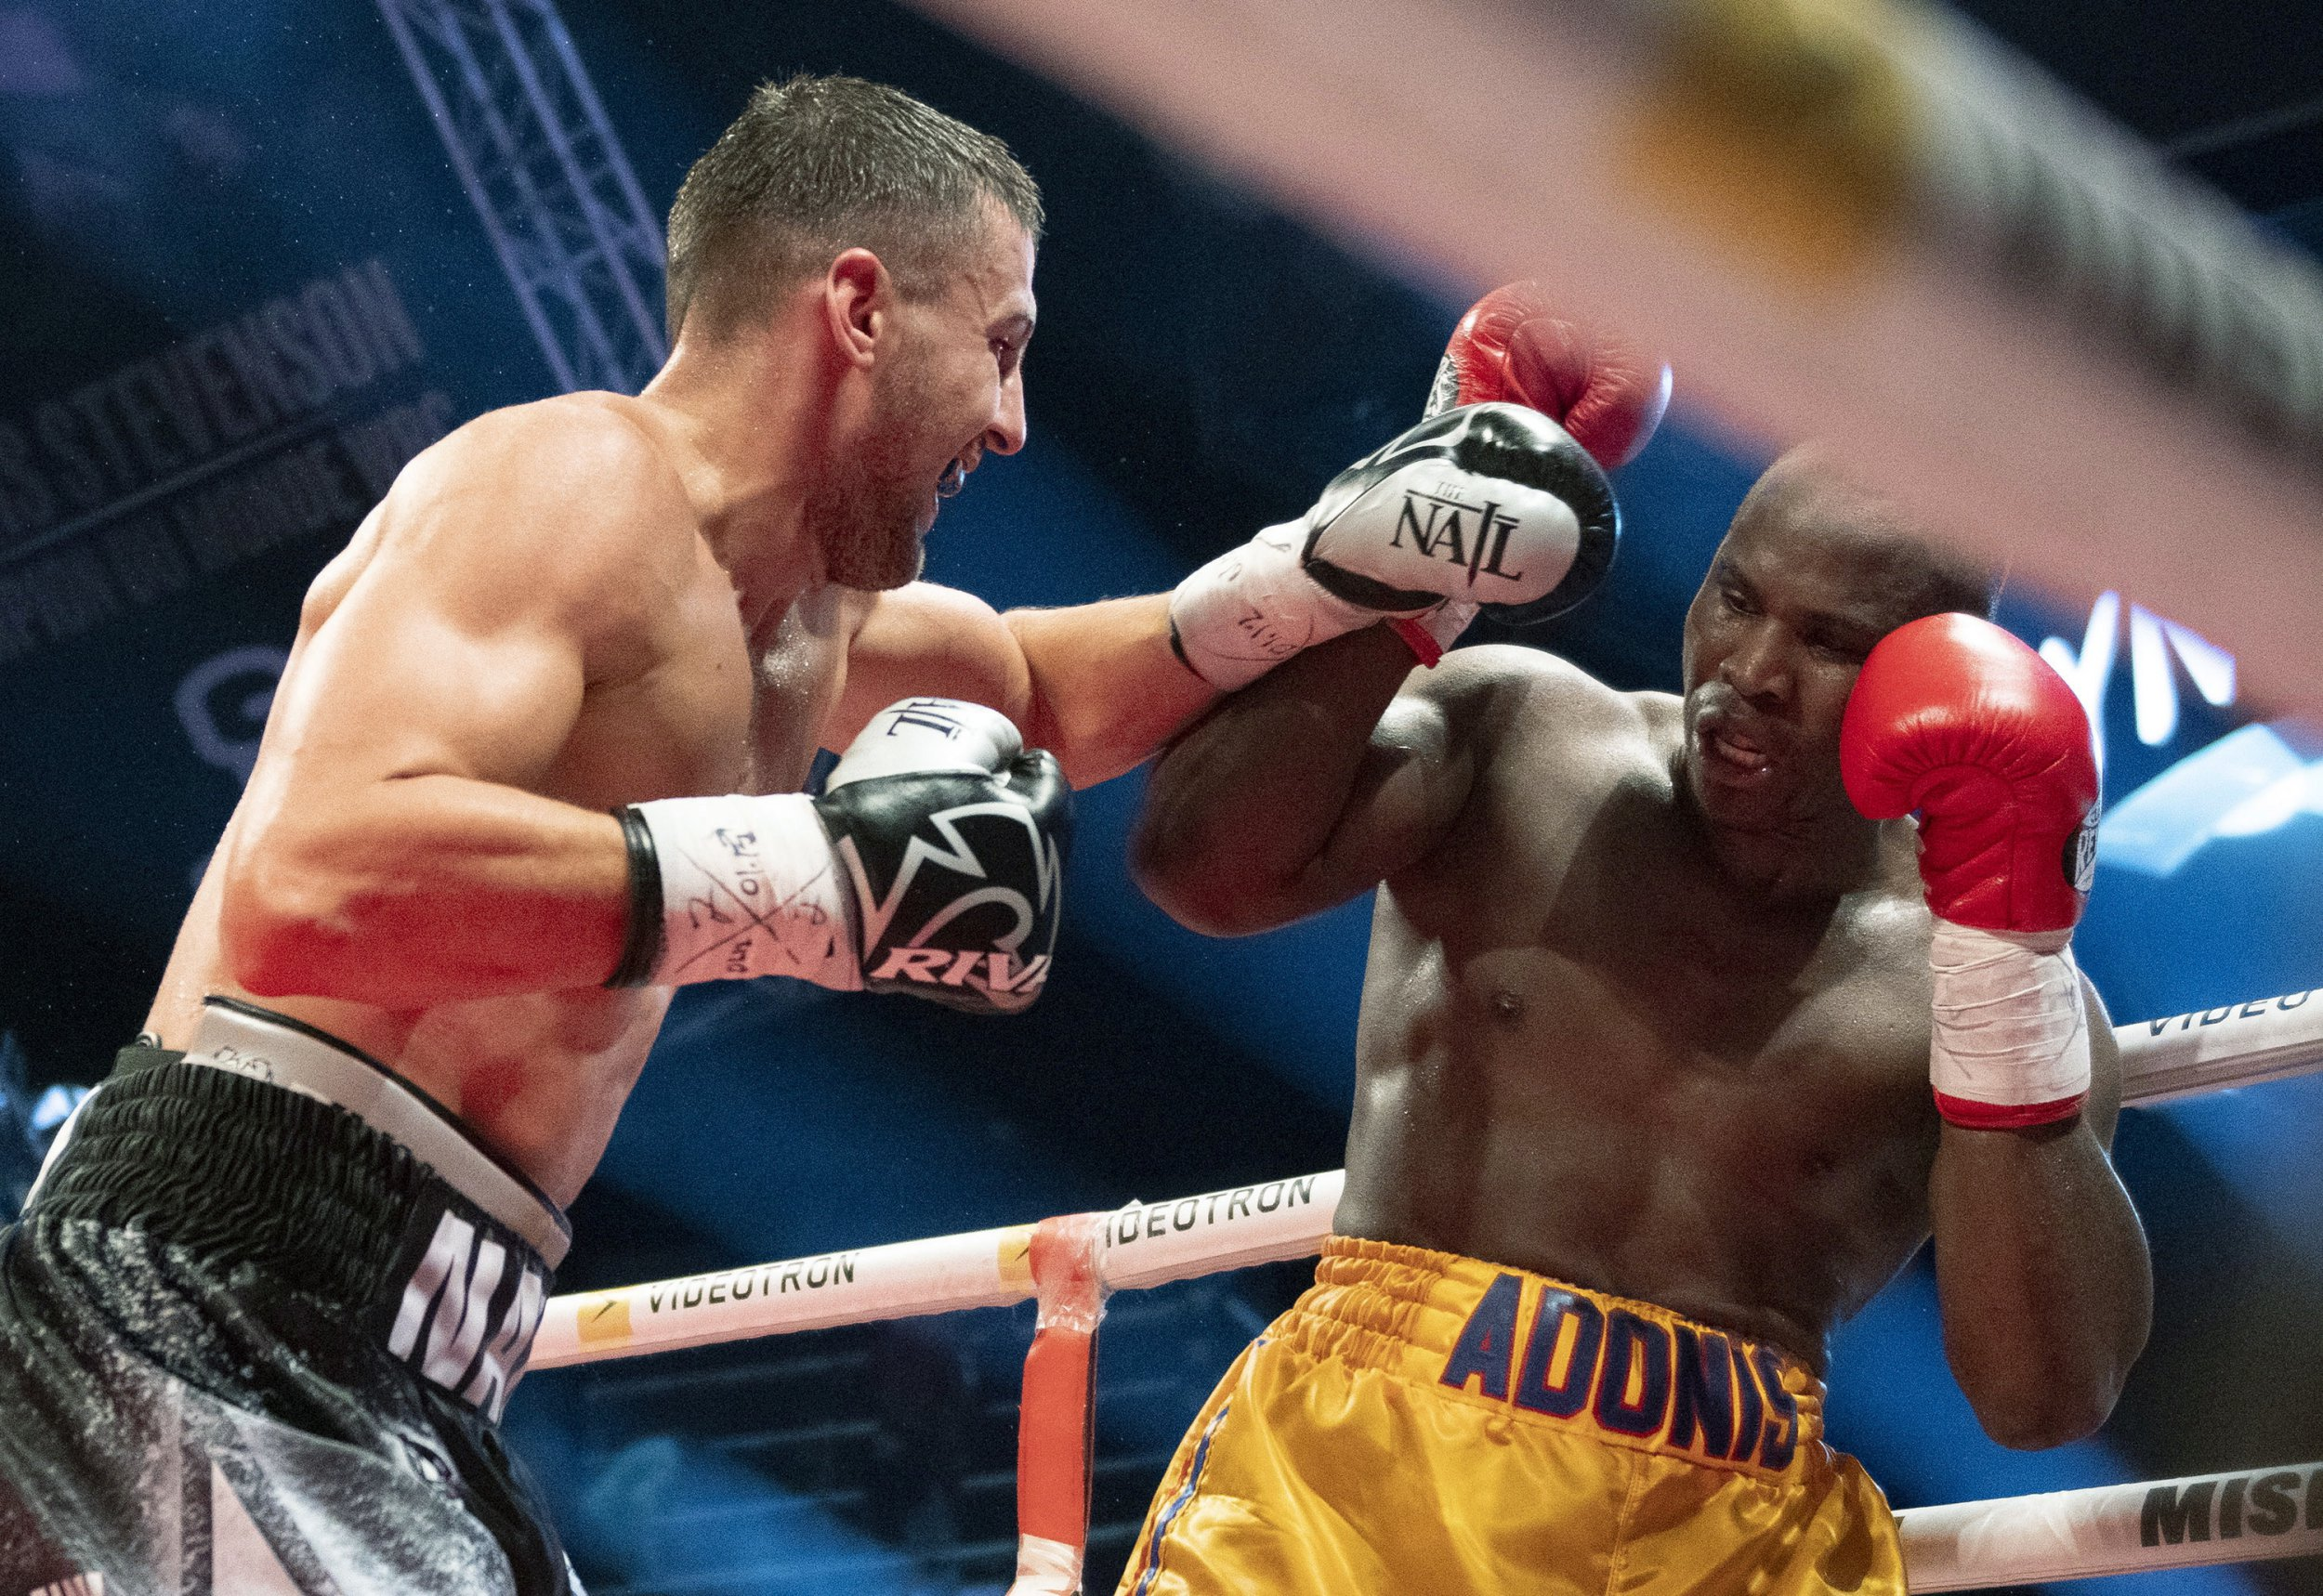 Oleksandr Gvozdyk, of Ukraine, forces Adonis Stevenson, of Canada, in the corner during their light heavyweight WBC championship boxing fight, Saturday, Dec. 1, 2018, in Quebec City. (Jacques Boissinot/The Canadian Press via AP)